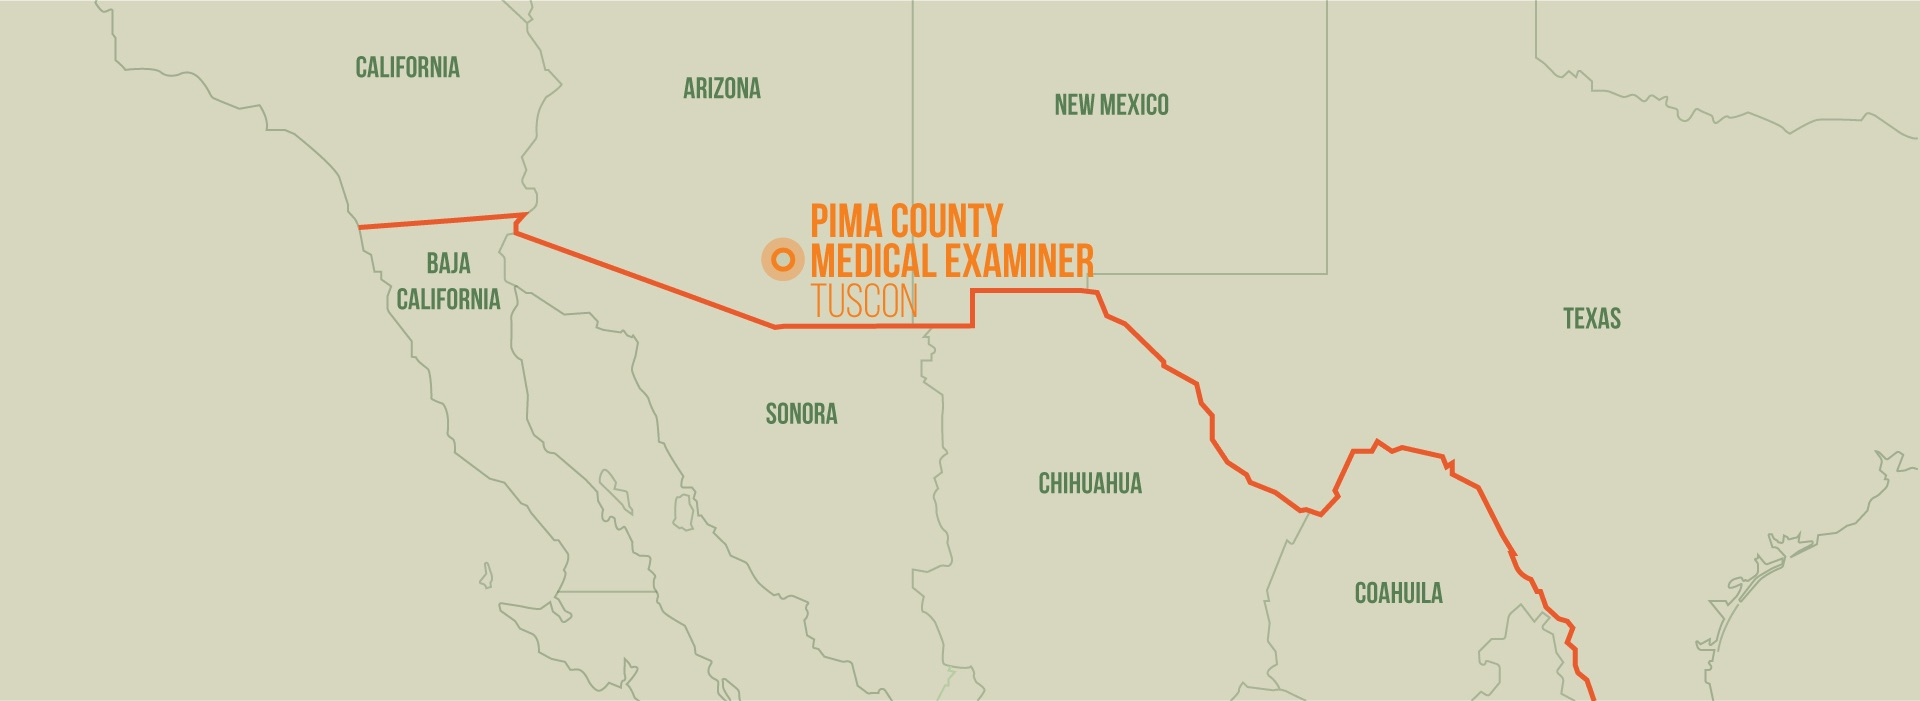 Office of the Prima County Medical Examiner, Tuscon, Ariz. Mallory Short/The Drive